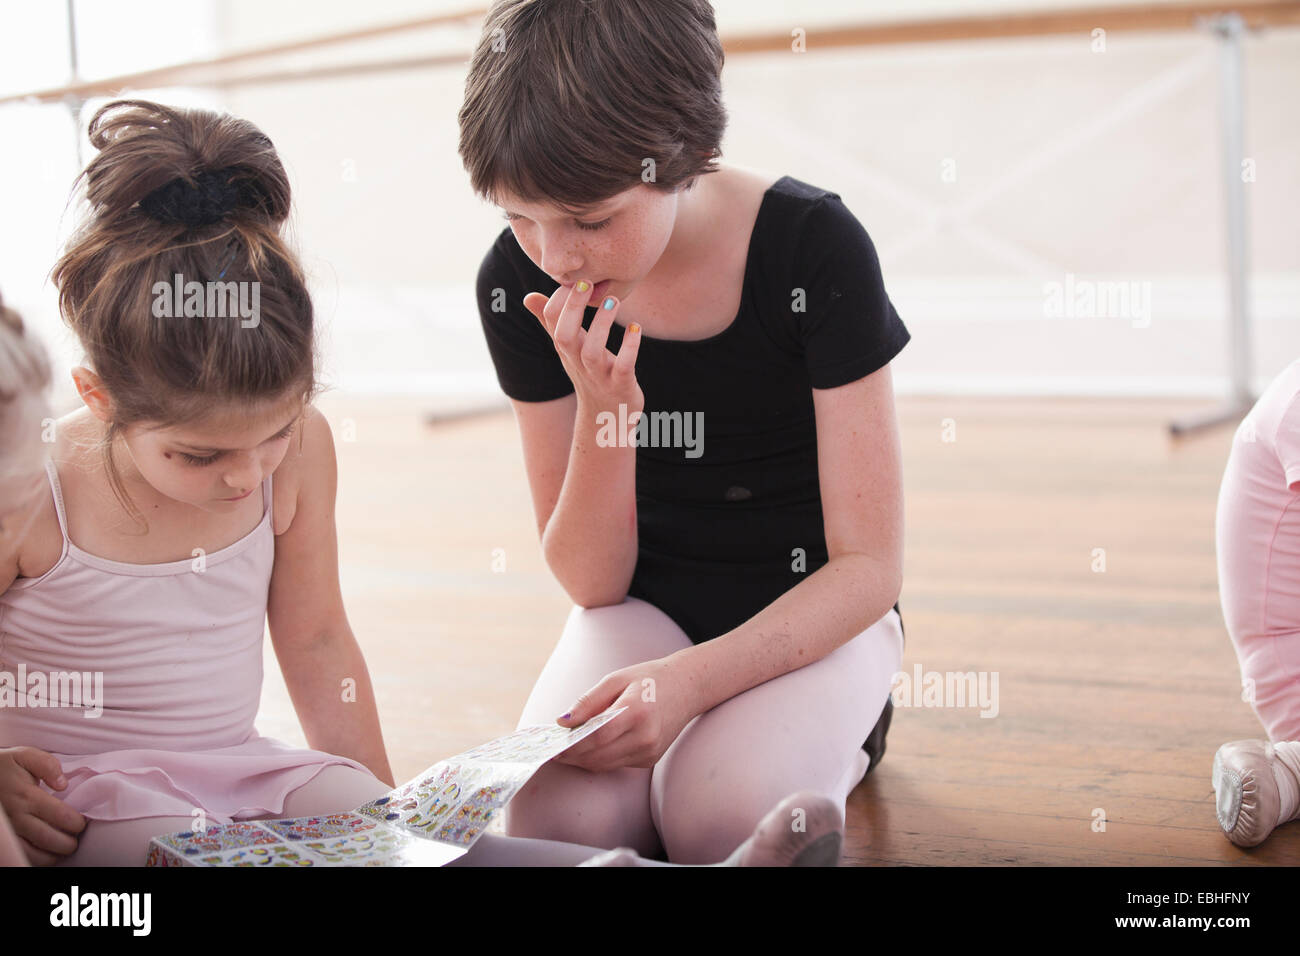 Girls swapping stickers in ballet school - Stock Image